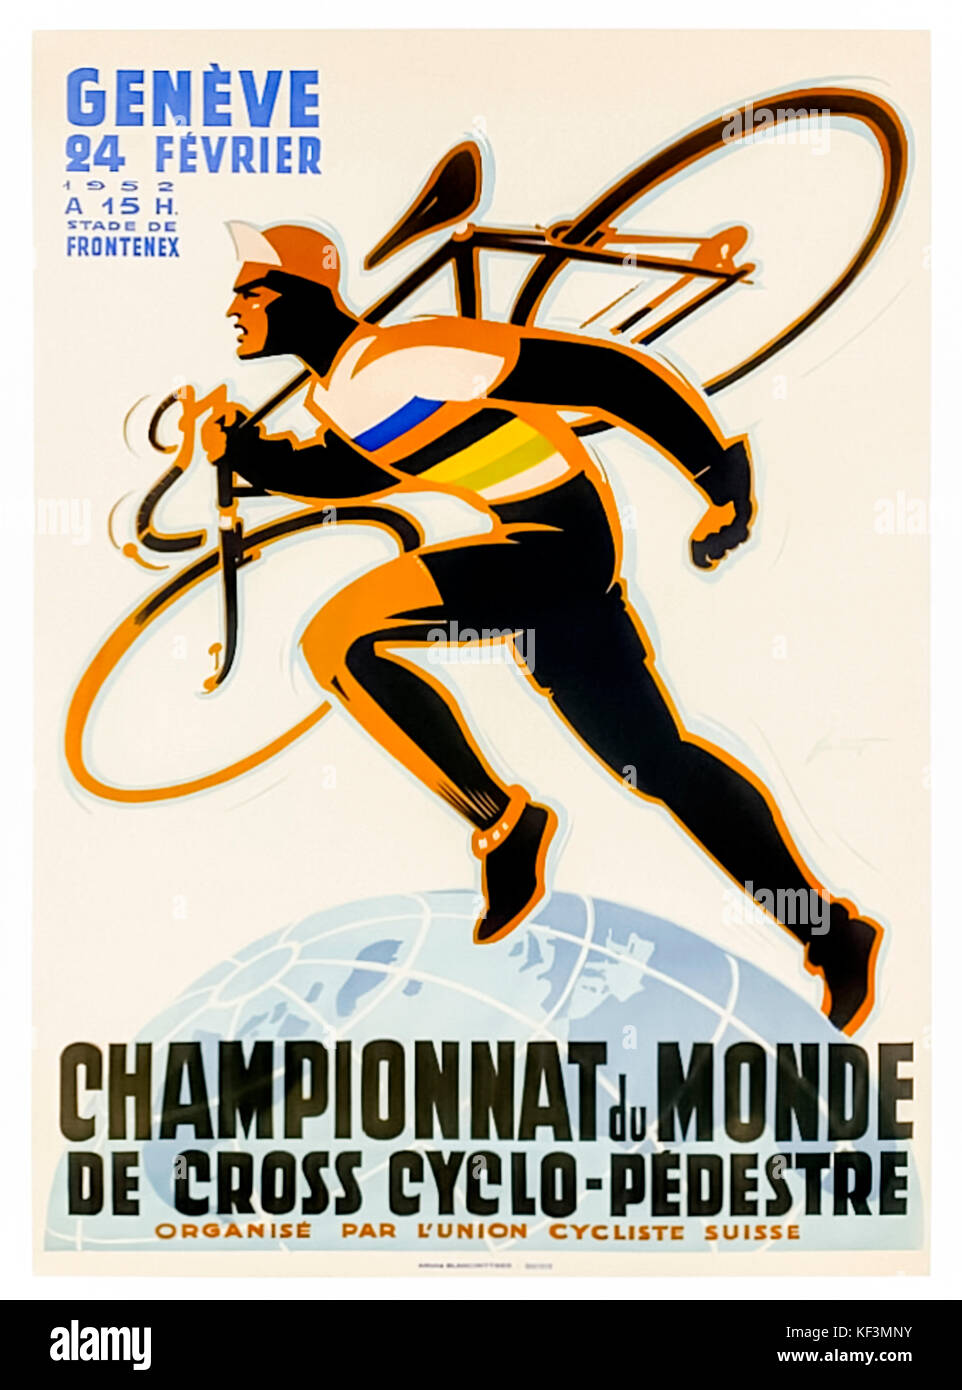 Poster for the Cyclo-cross World Championships 1952 held by L'Union cycliste internationale (UCI) on 24 February - Stock Image